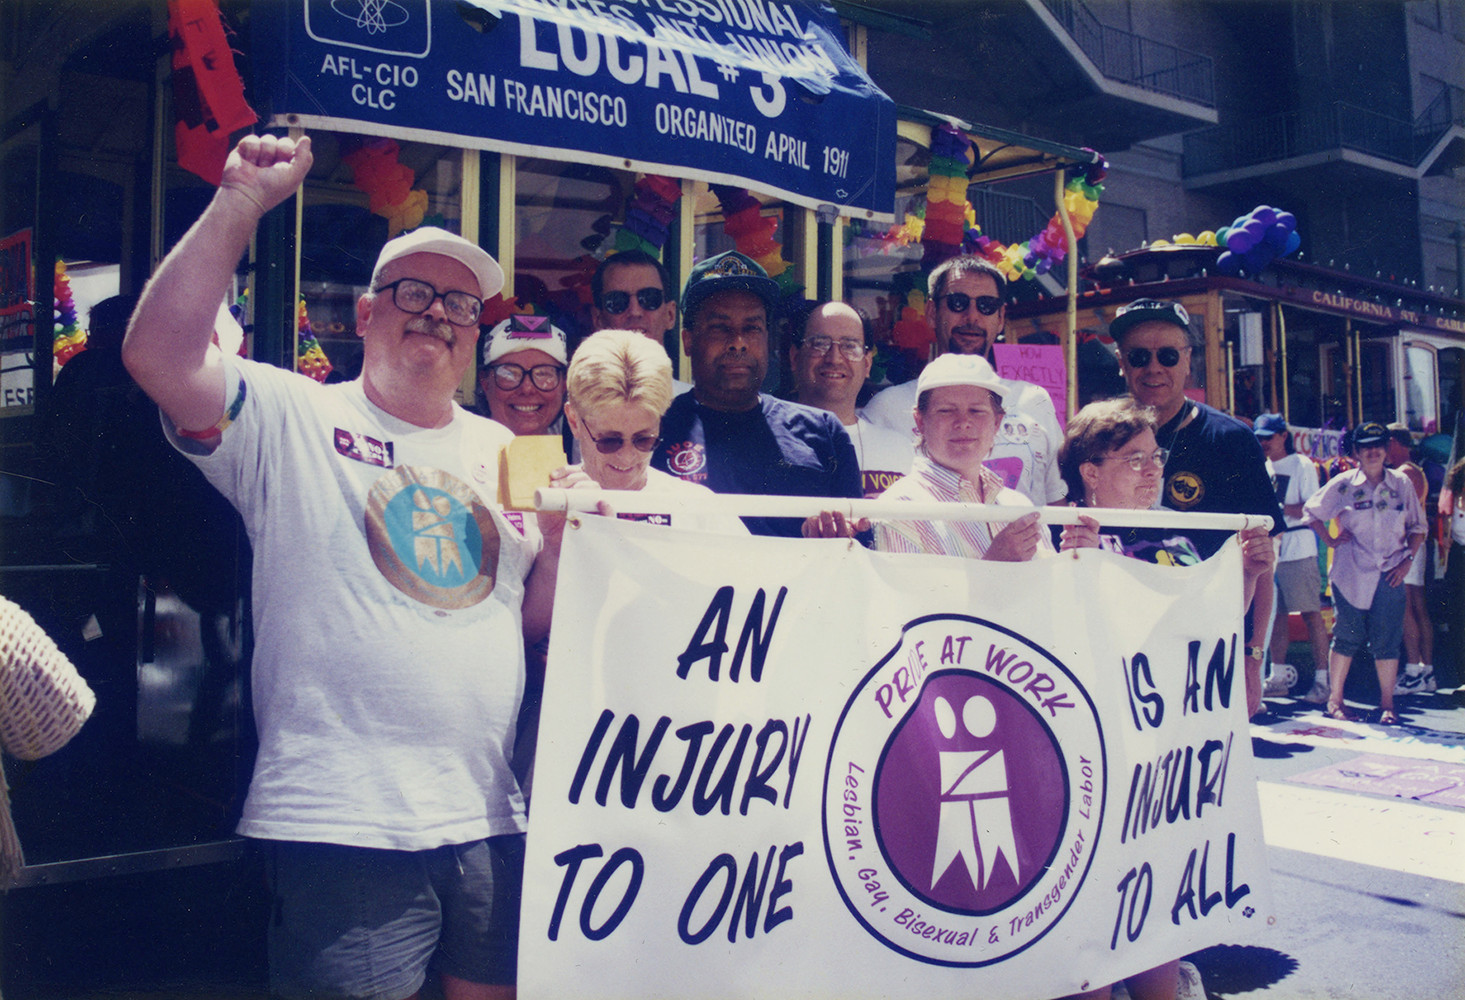 Pride at Work San Francisco Chapter members marching in the San Francisco Pride Parade, 1996. Pride at Work Records.